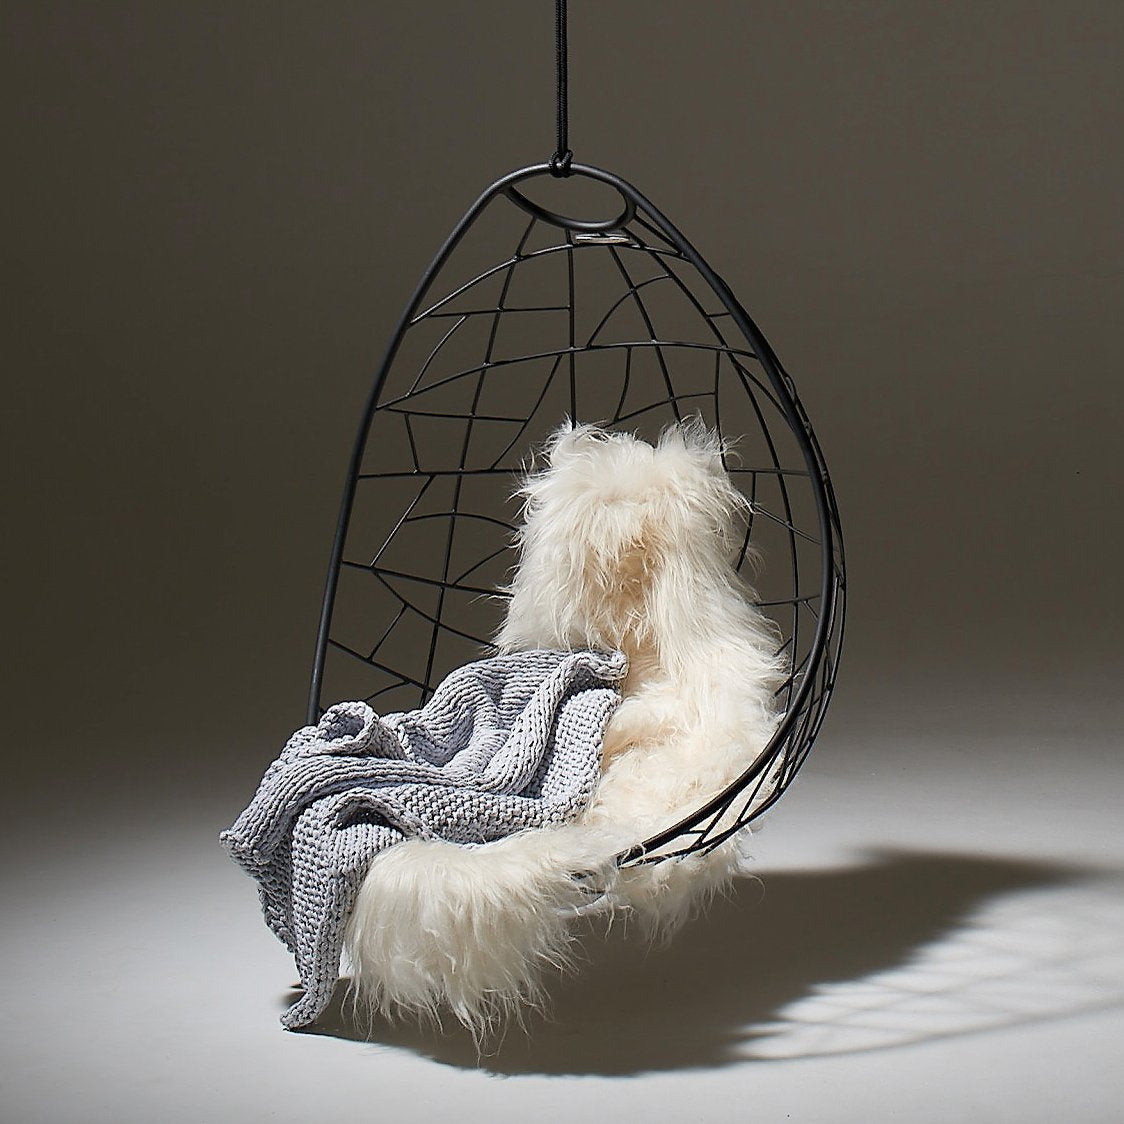 Nest%20Egg%20Icelandic%20Sheepskins%20and%20Blanket.jpg